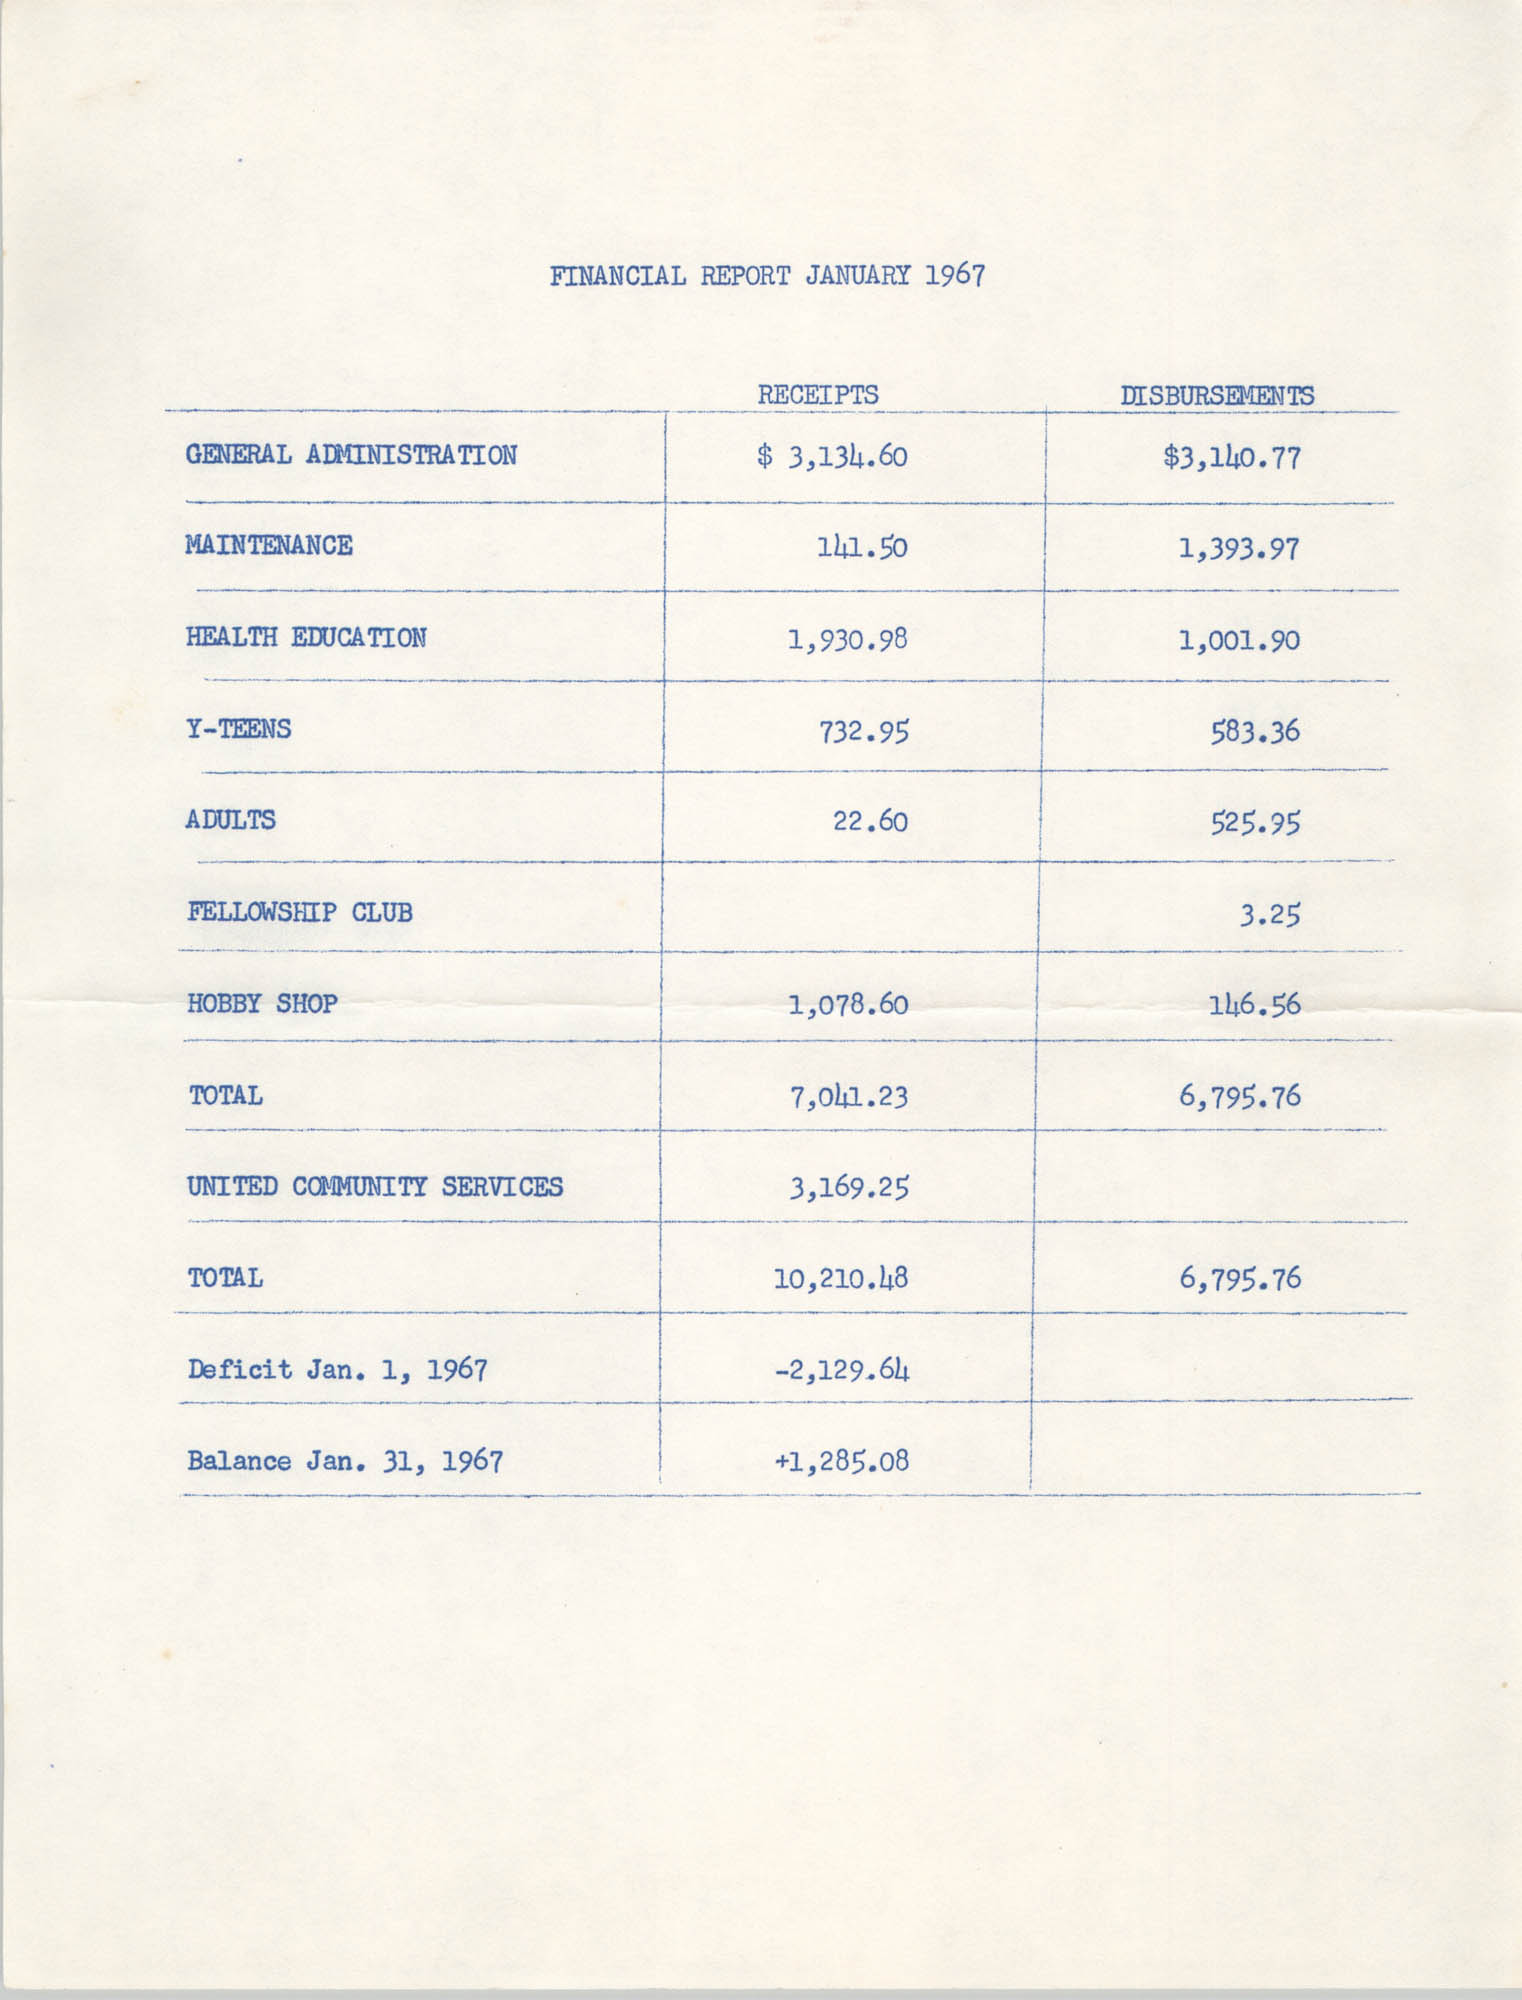 Coming Street Y.W.C.A. Financial Report, January 1967